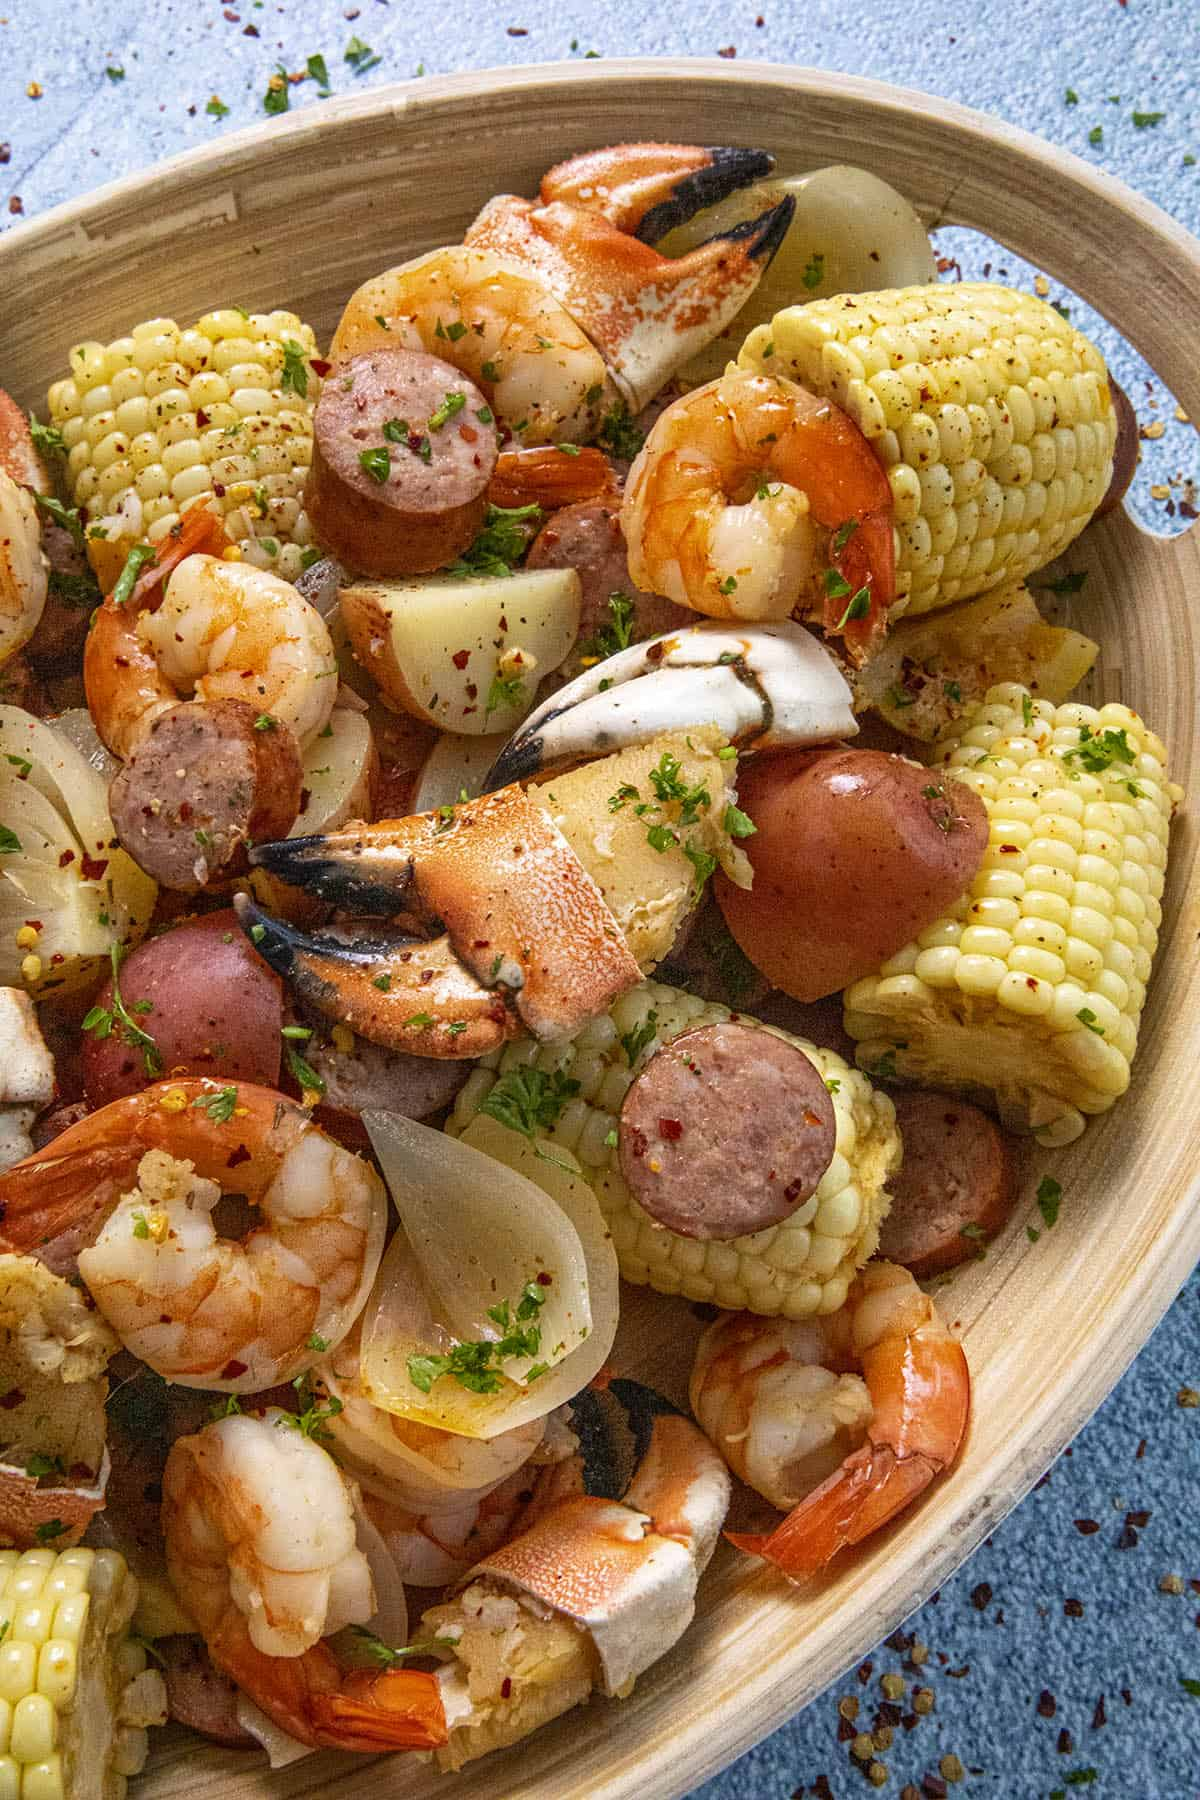 Chunky pieces of seafood, sausage and corn on a platter, low country boil style